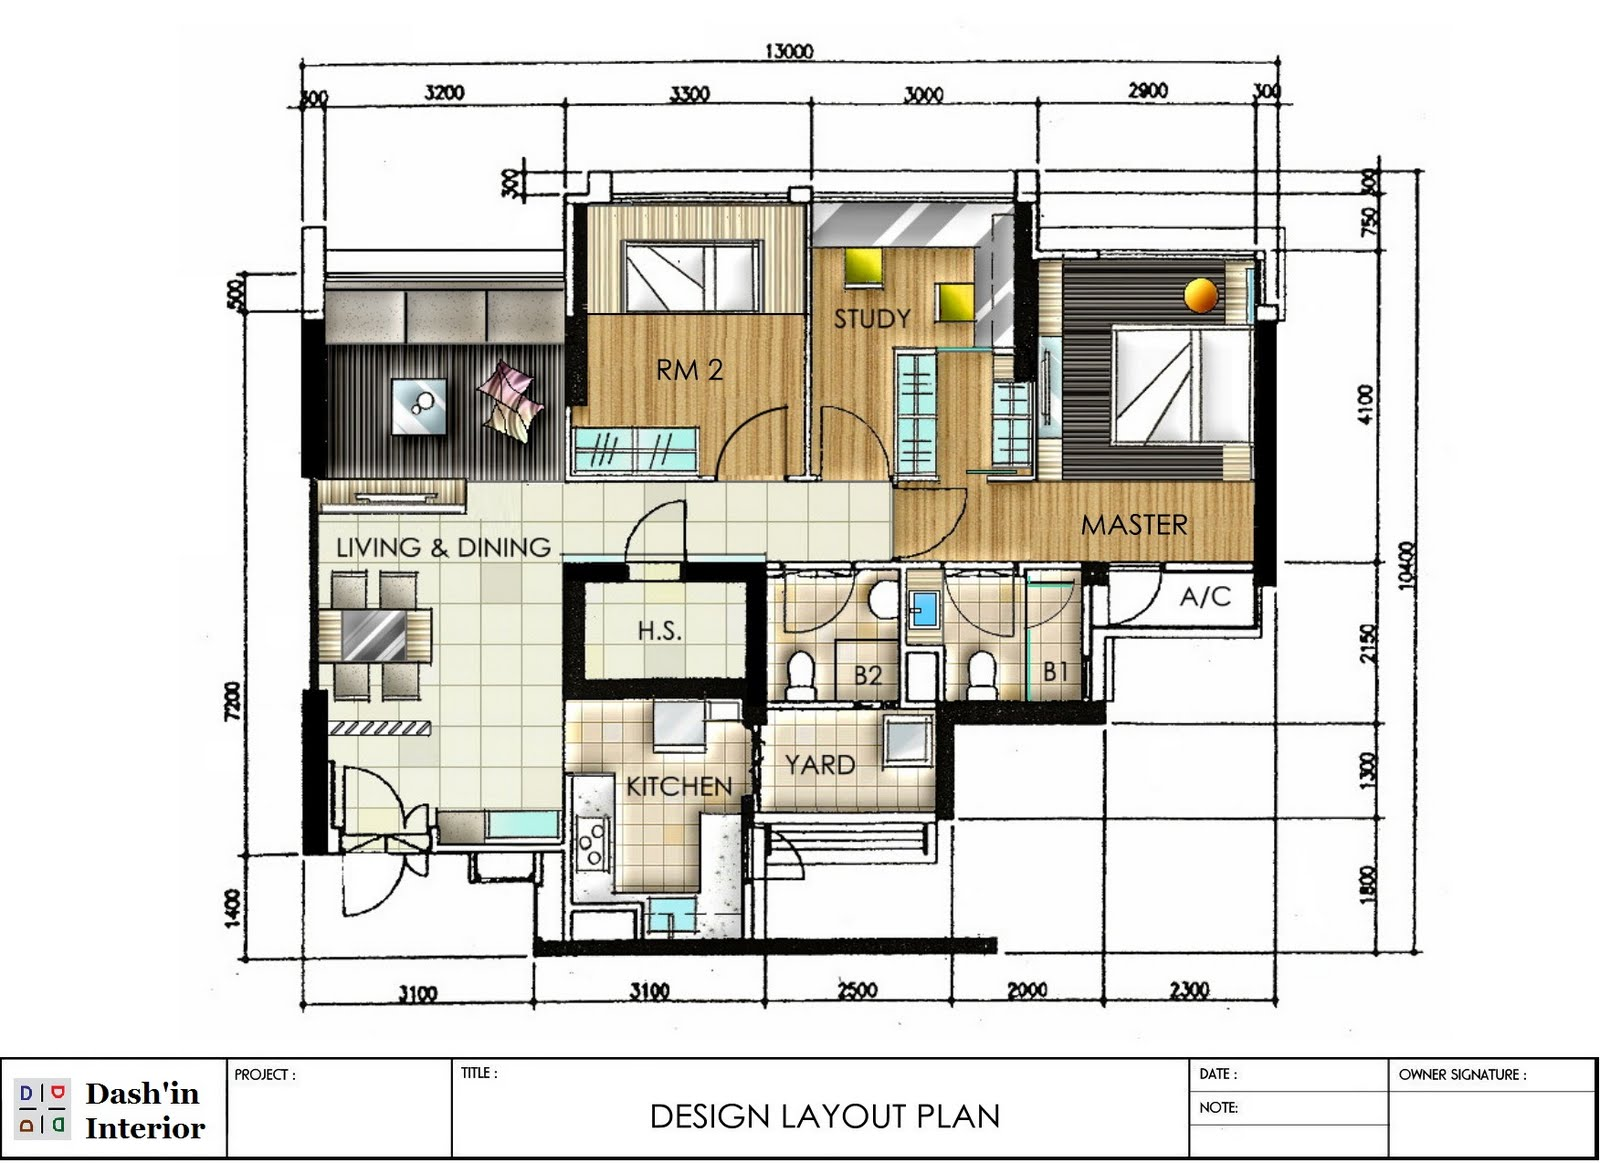 Dash 39 in interior hand drawn designs floor plan layout for How to design a house floor plan